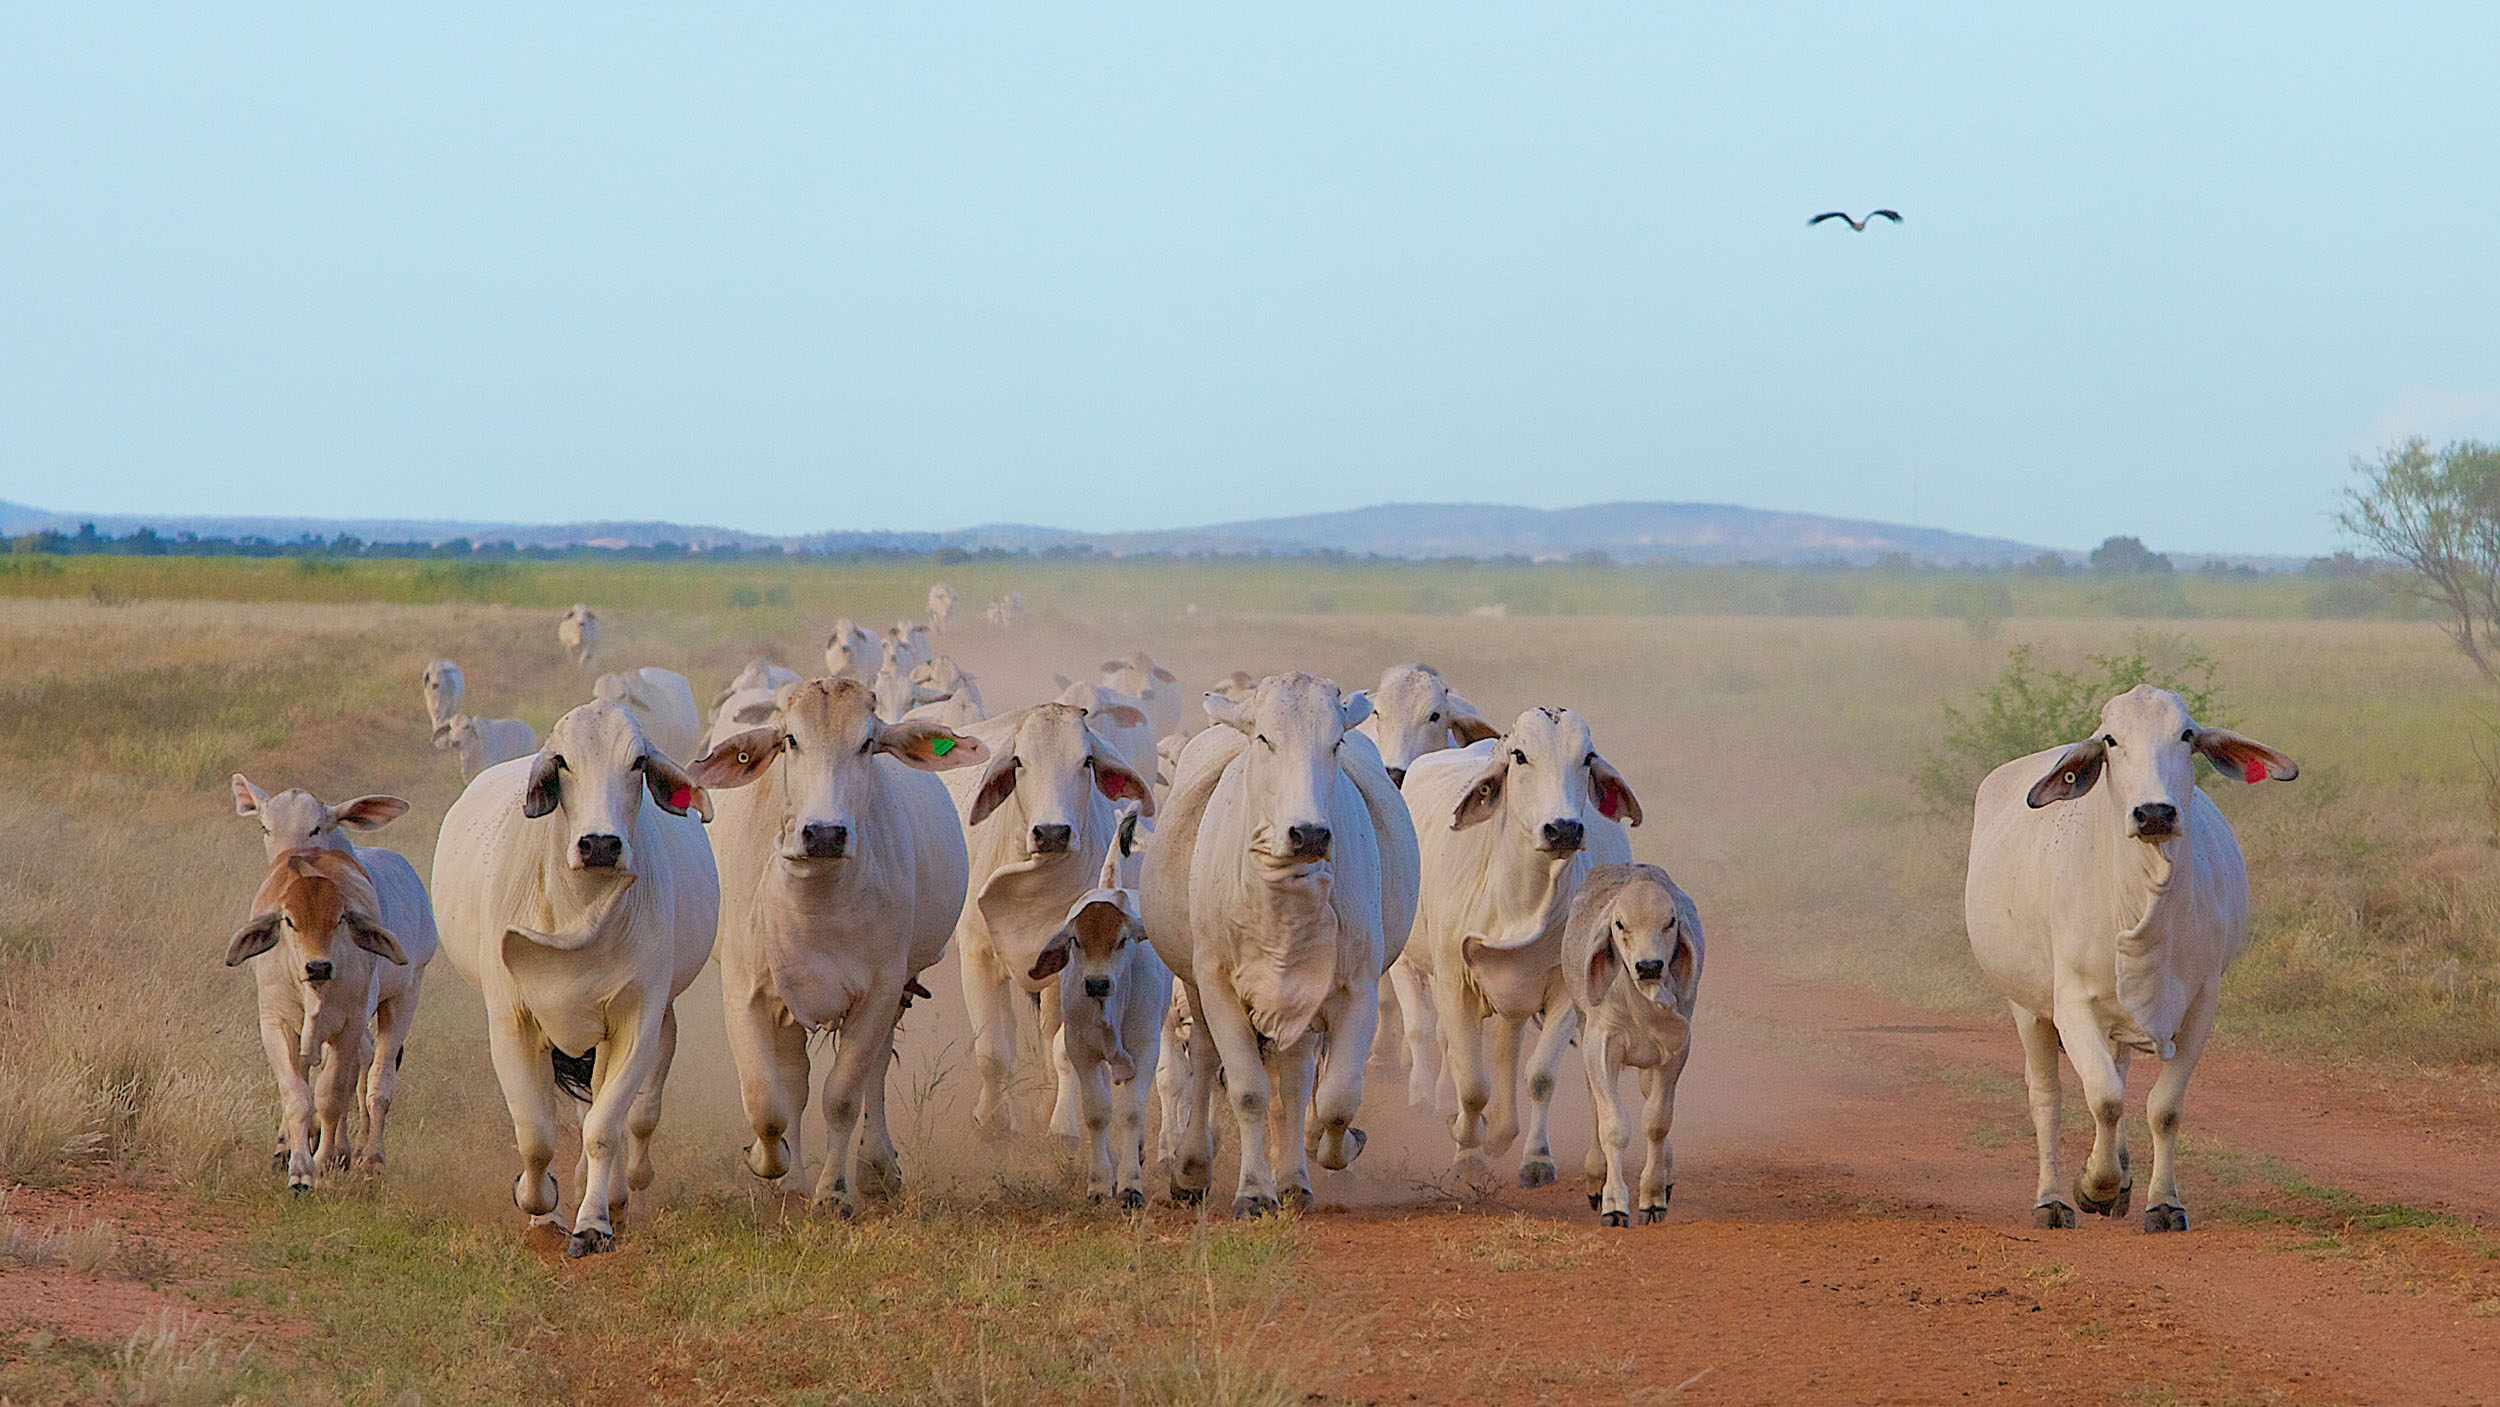 Pastoralism is the most extensive land use across the Outback, with states and territories issuing long-term leases over crown land. Beef cattle are the dominant livestock, with some areas also farming sheep and goats. These Brahman cattle are on the floodplain of the Thomson River in Outback Queensland.